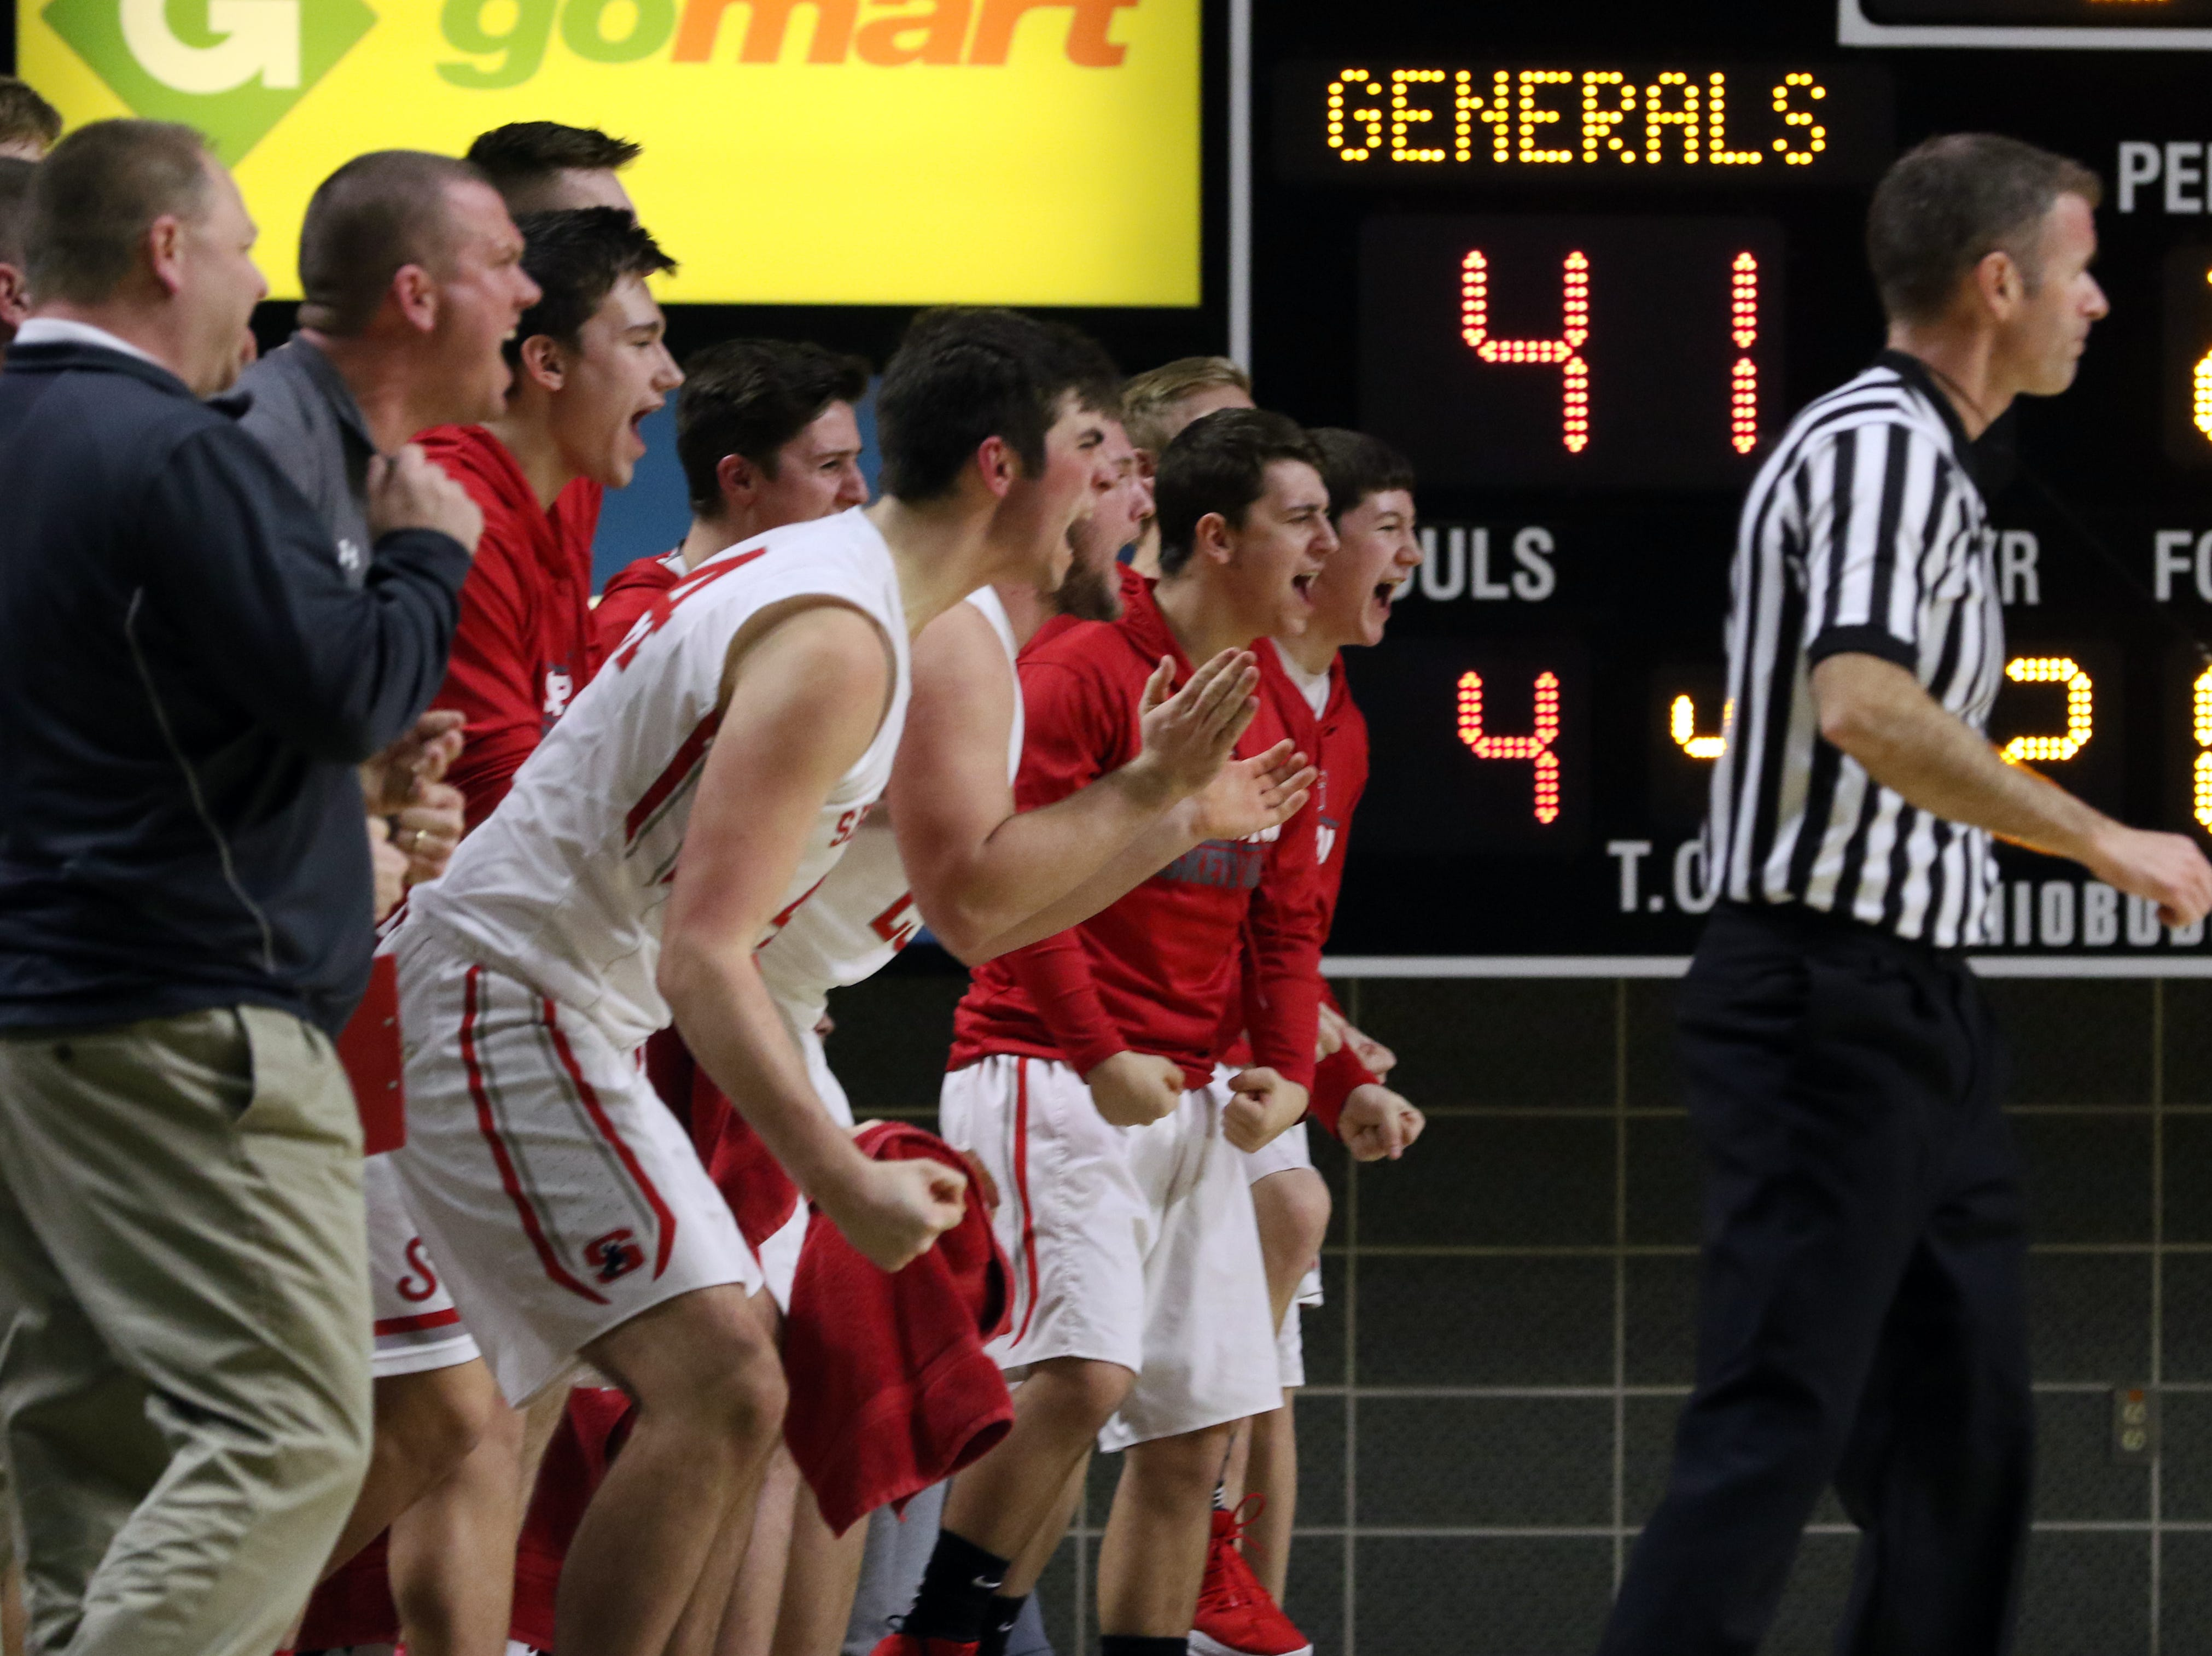 The Sheridan bench celebrates a play against Steubenville in the Division II regional semifinals Wednesday in Athens.